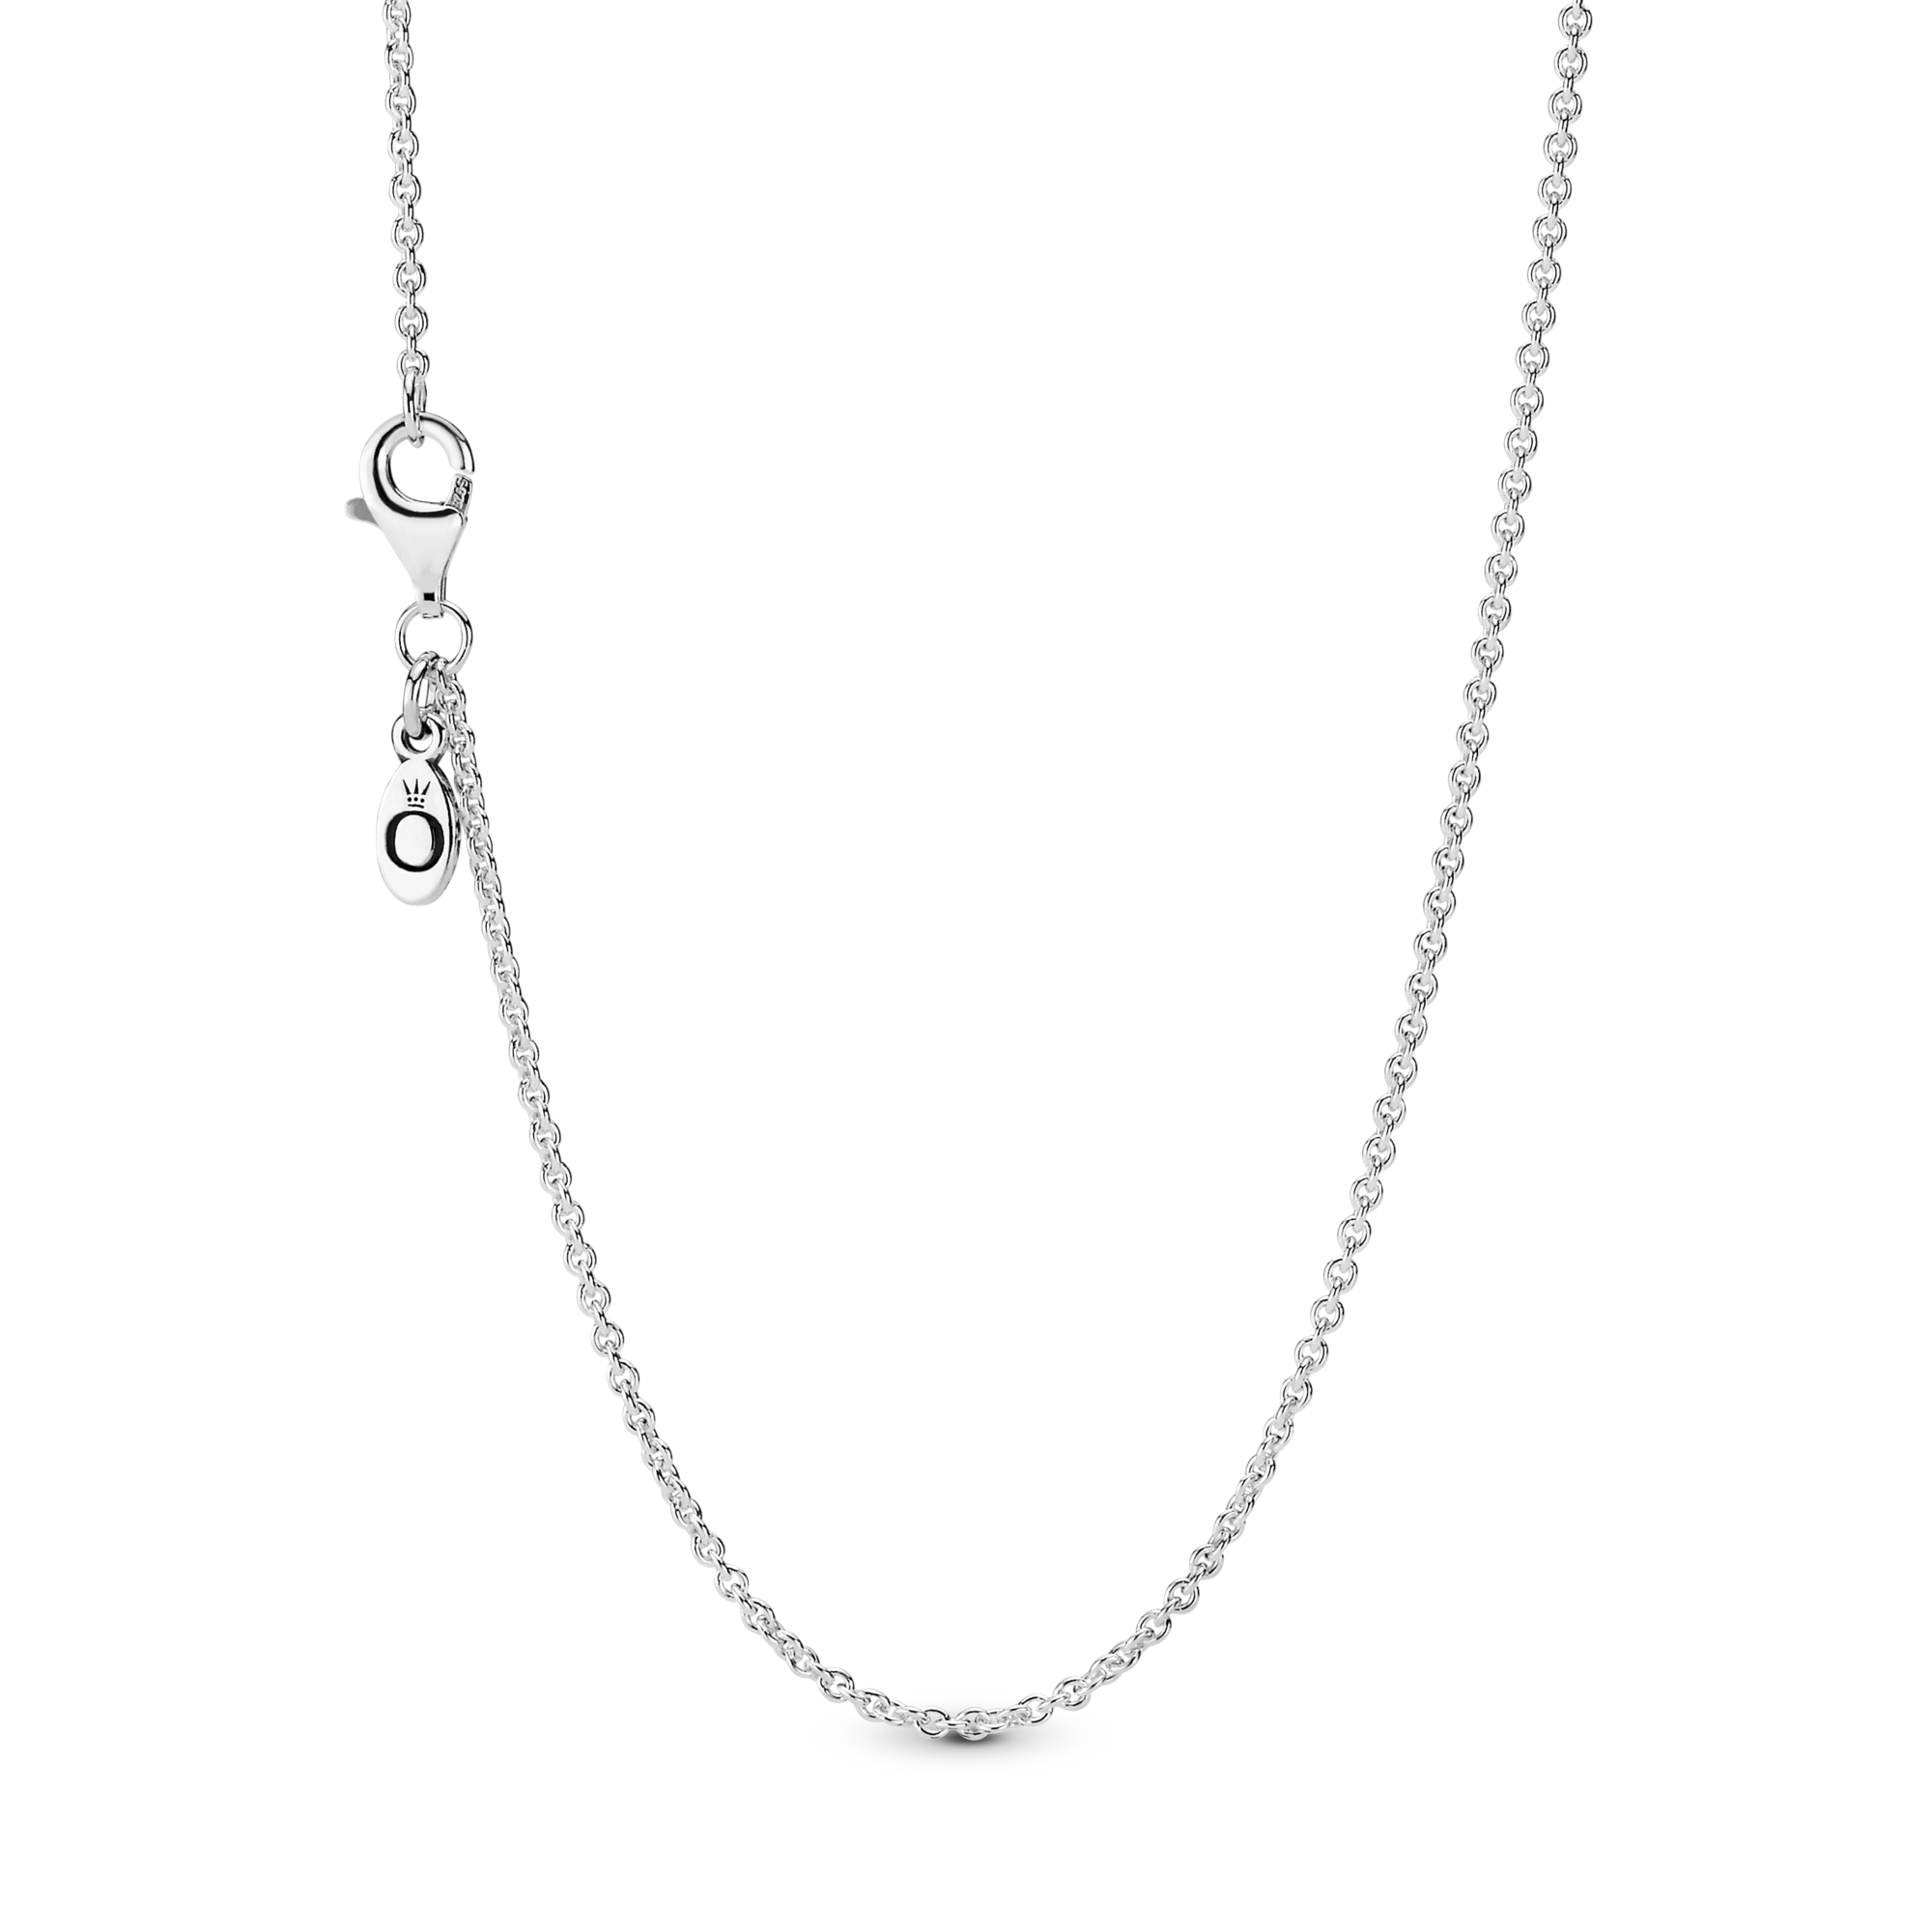 Classic Cable Chain Kette